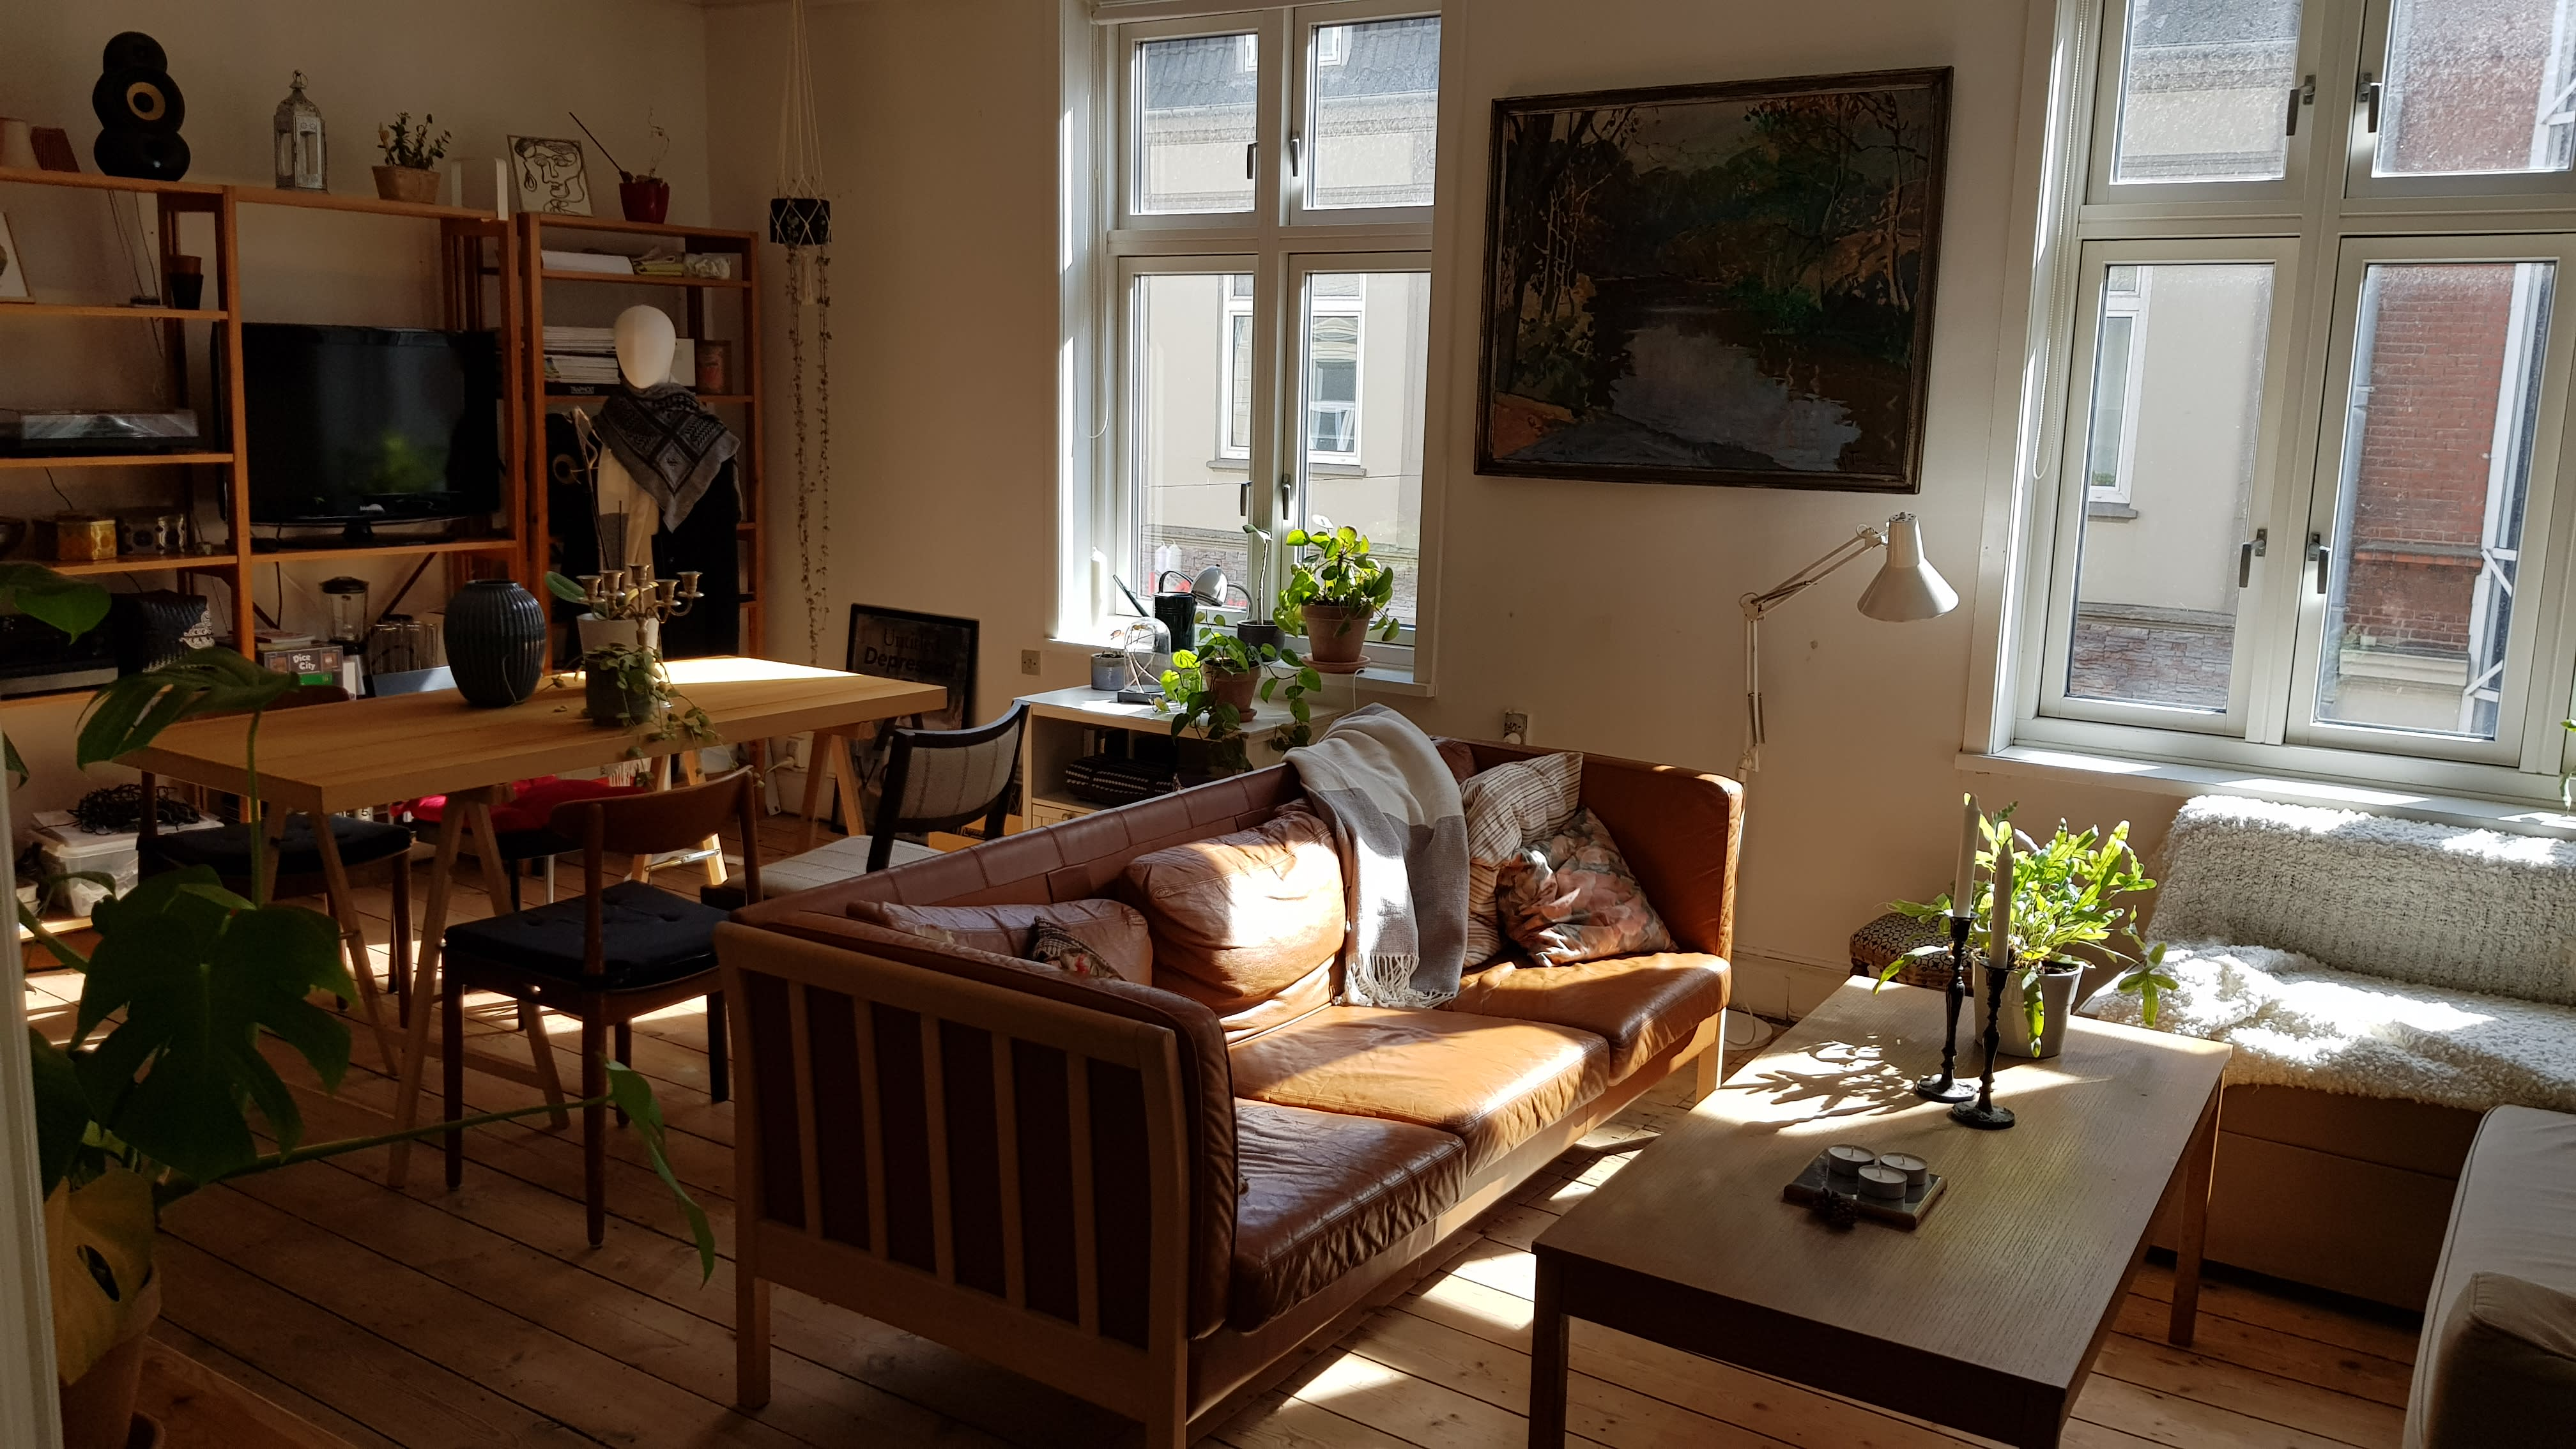 Lovely room in the center of Kolding